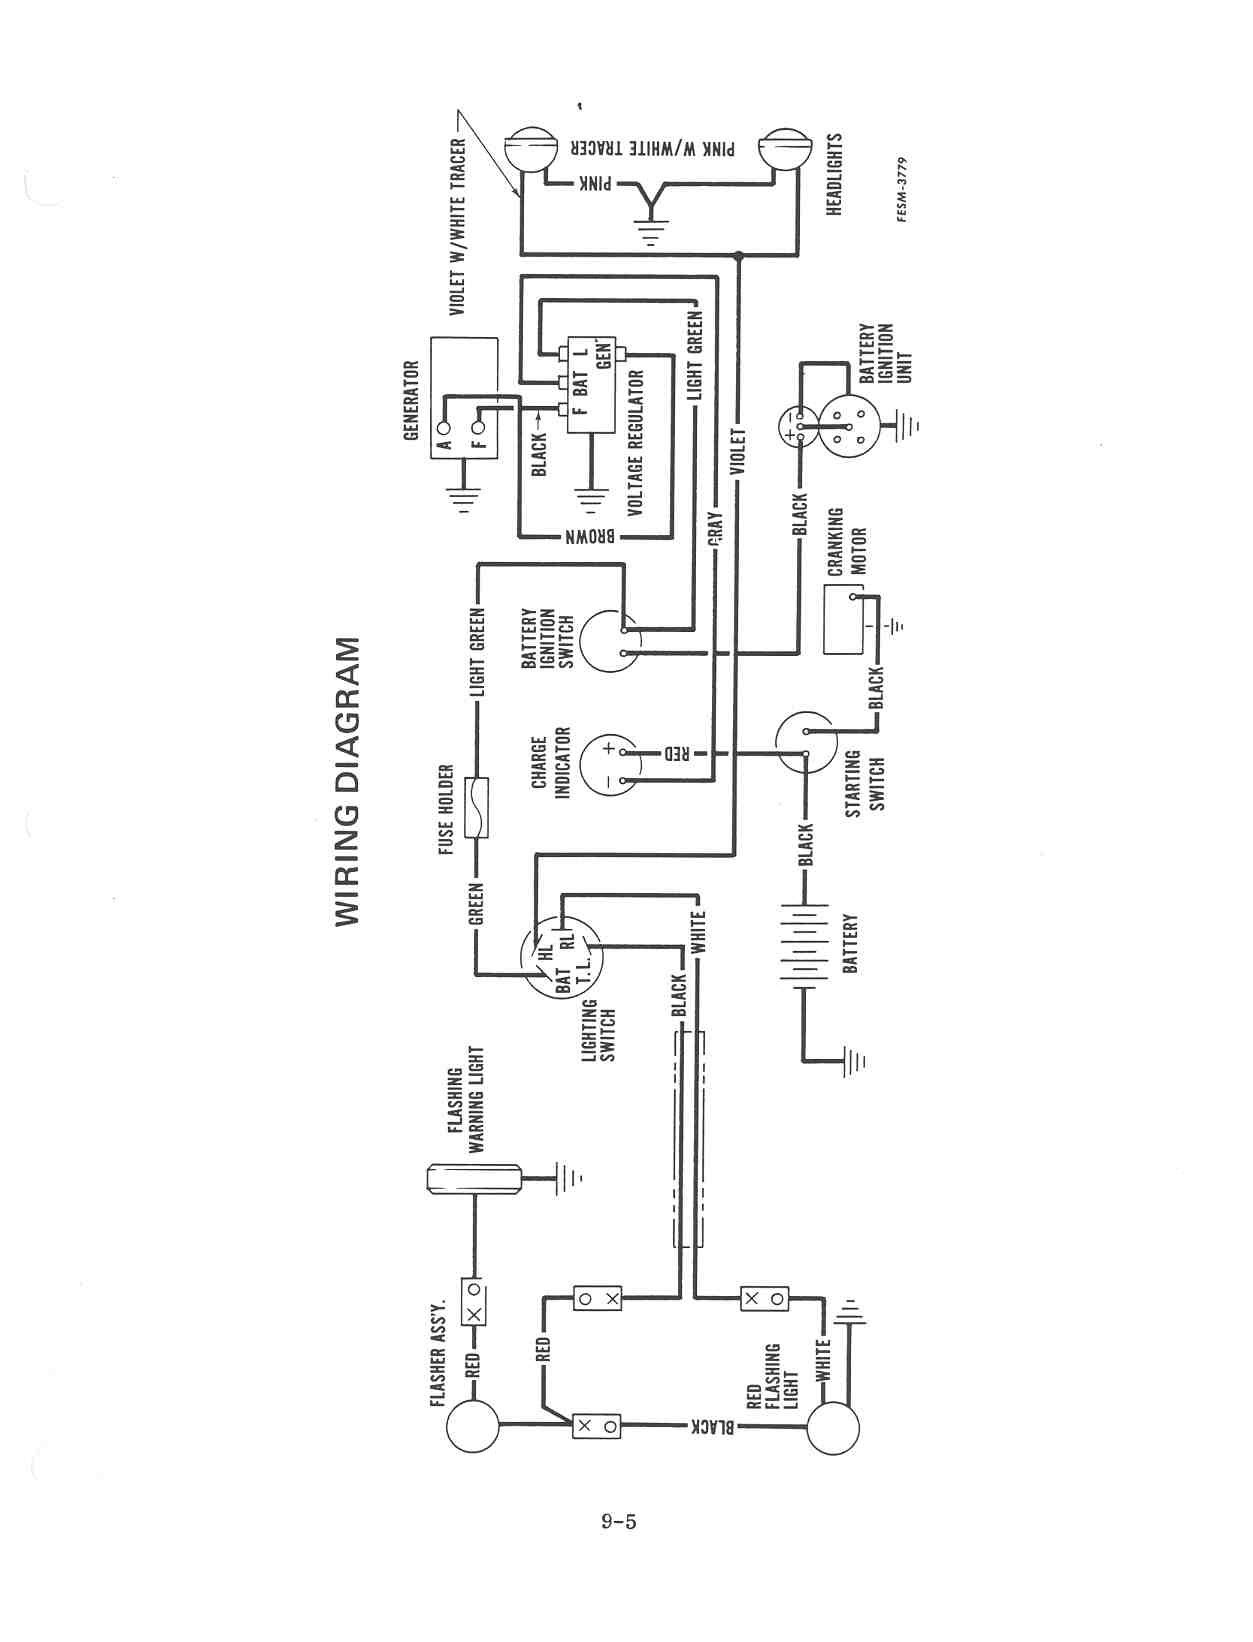 [SCHEMATICS_4UK]  DIAGRAM] Farmall 560 Tractor Wiring Diagram FULL Version HD Quality Wiring  Diagram - DIAGRAMCORP.GLAUCOMANET.IT | Ih 560 Wiring Diagram |  | Glaucomanet.it